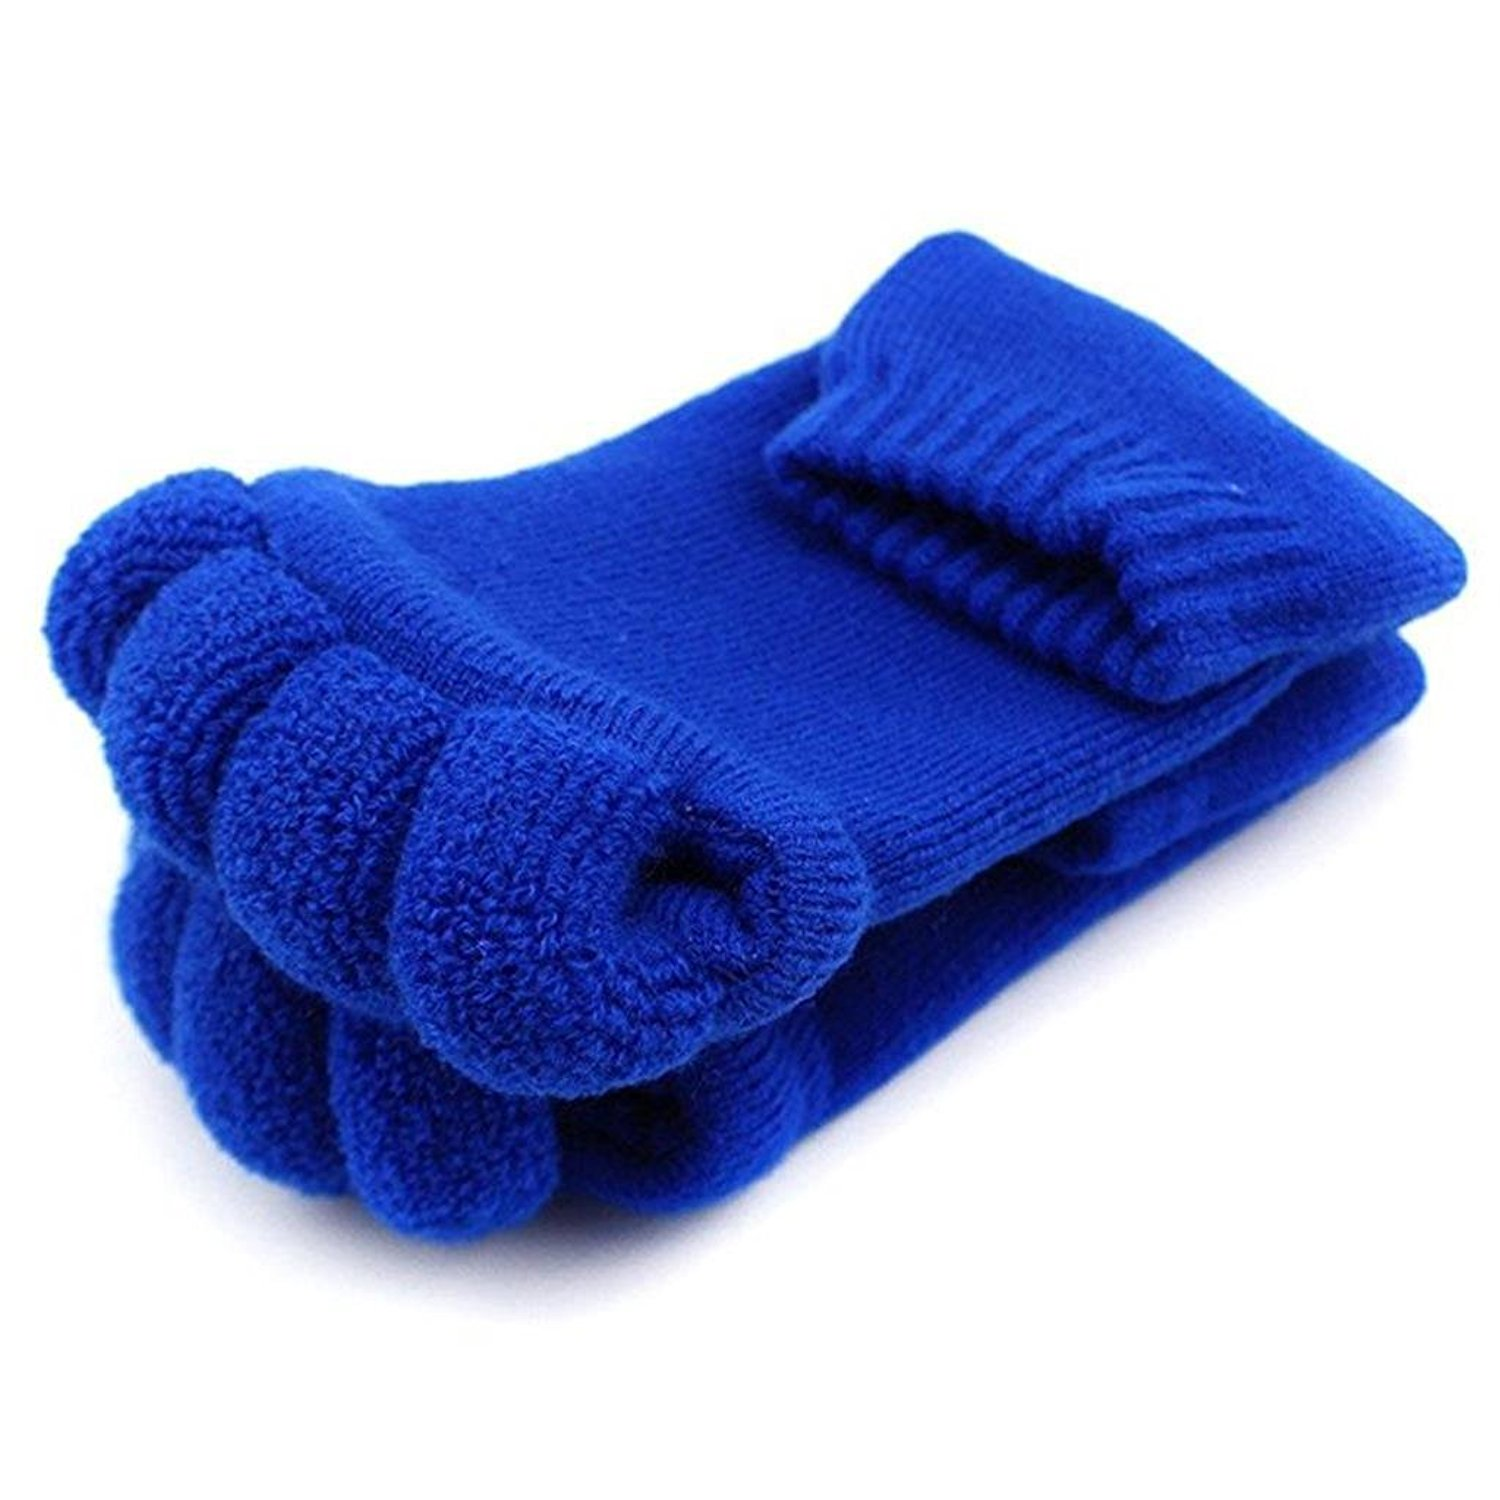 a1db1ab67d4 JASSINS One Pair of Massage Toeless Toe Separator Open Toe Socks Thicken Foot  Alignment Socks